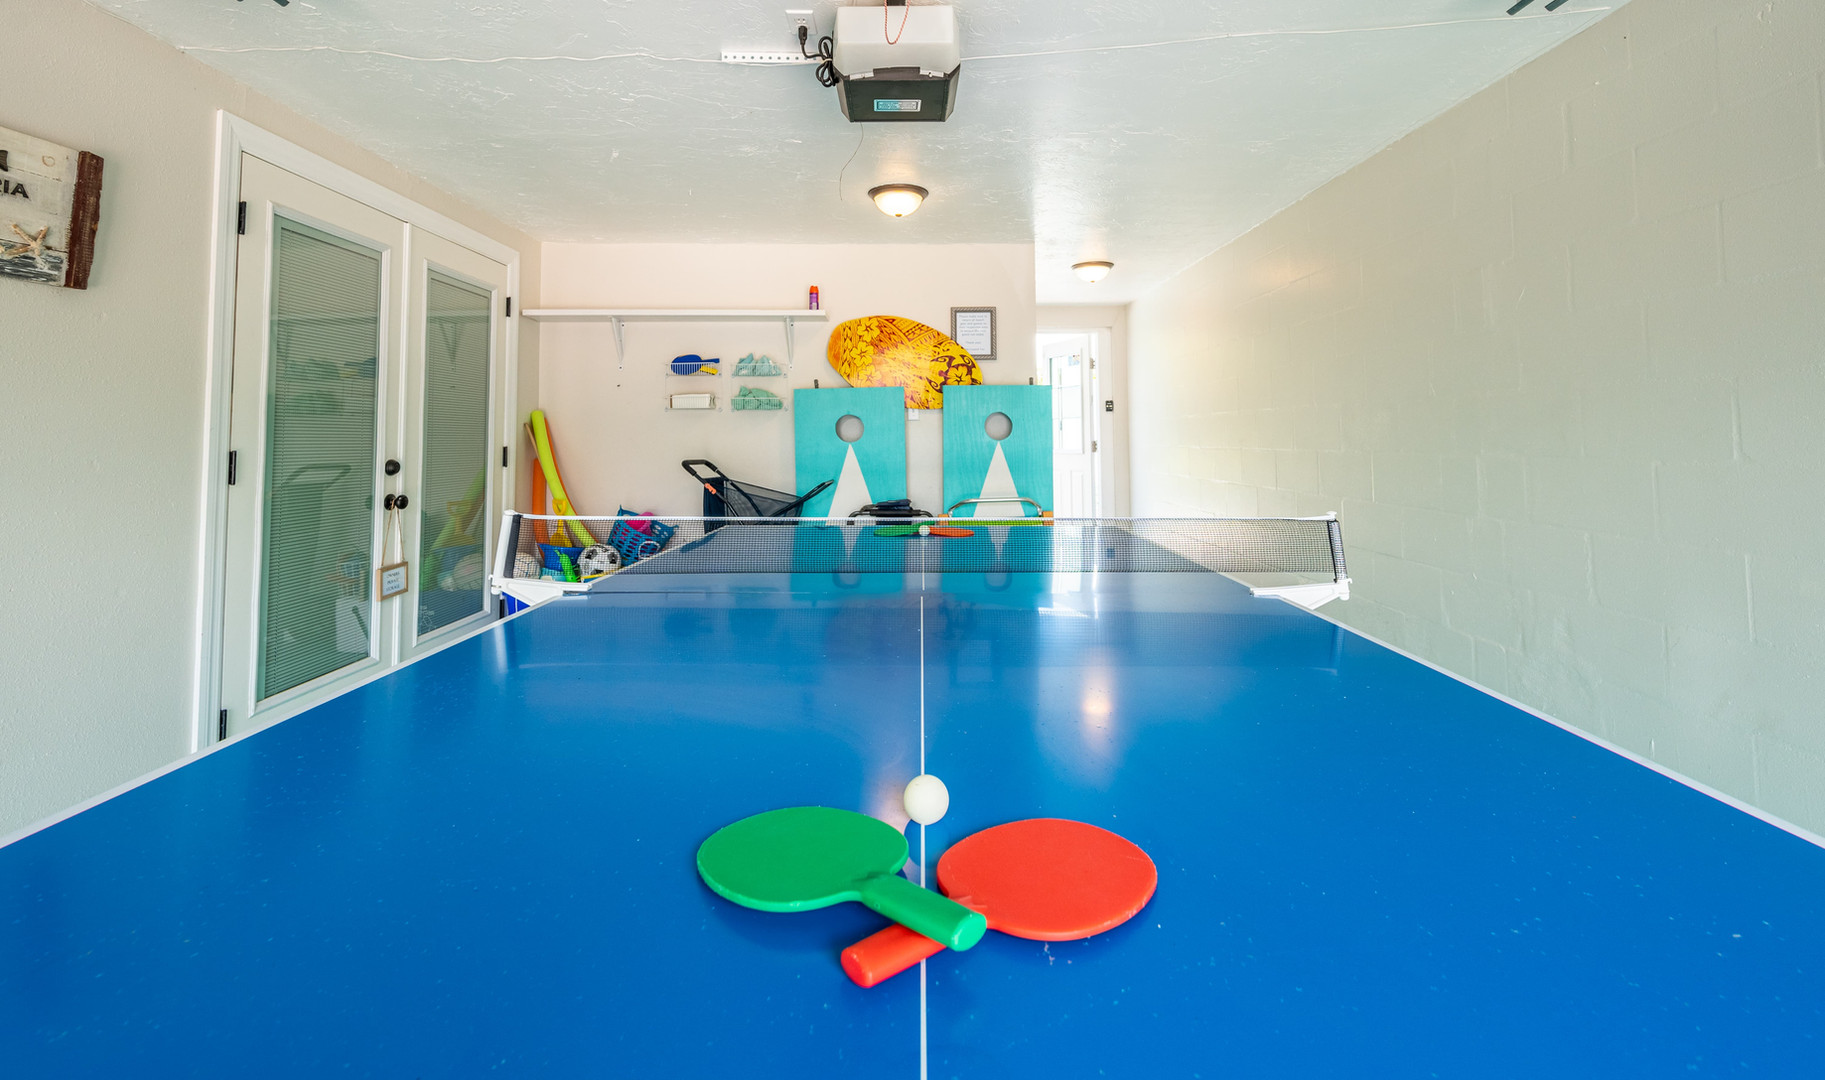 Ping pong and games